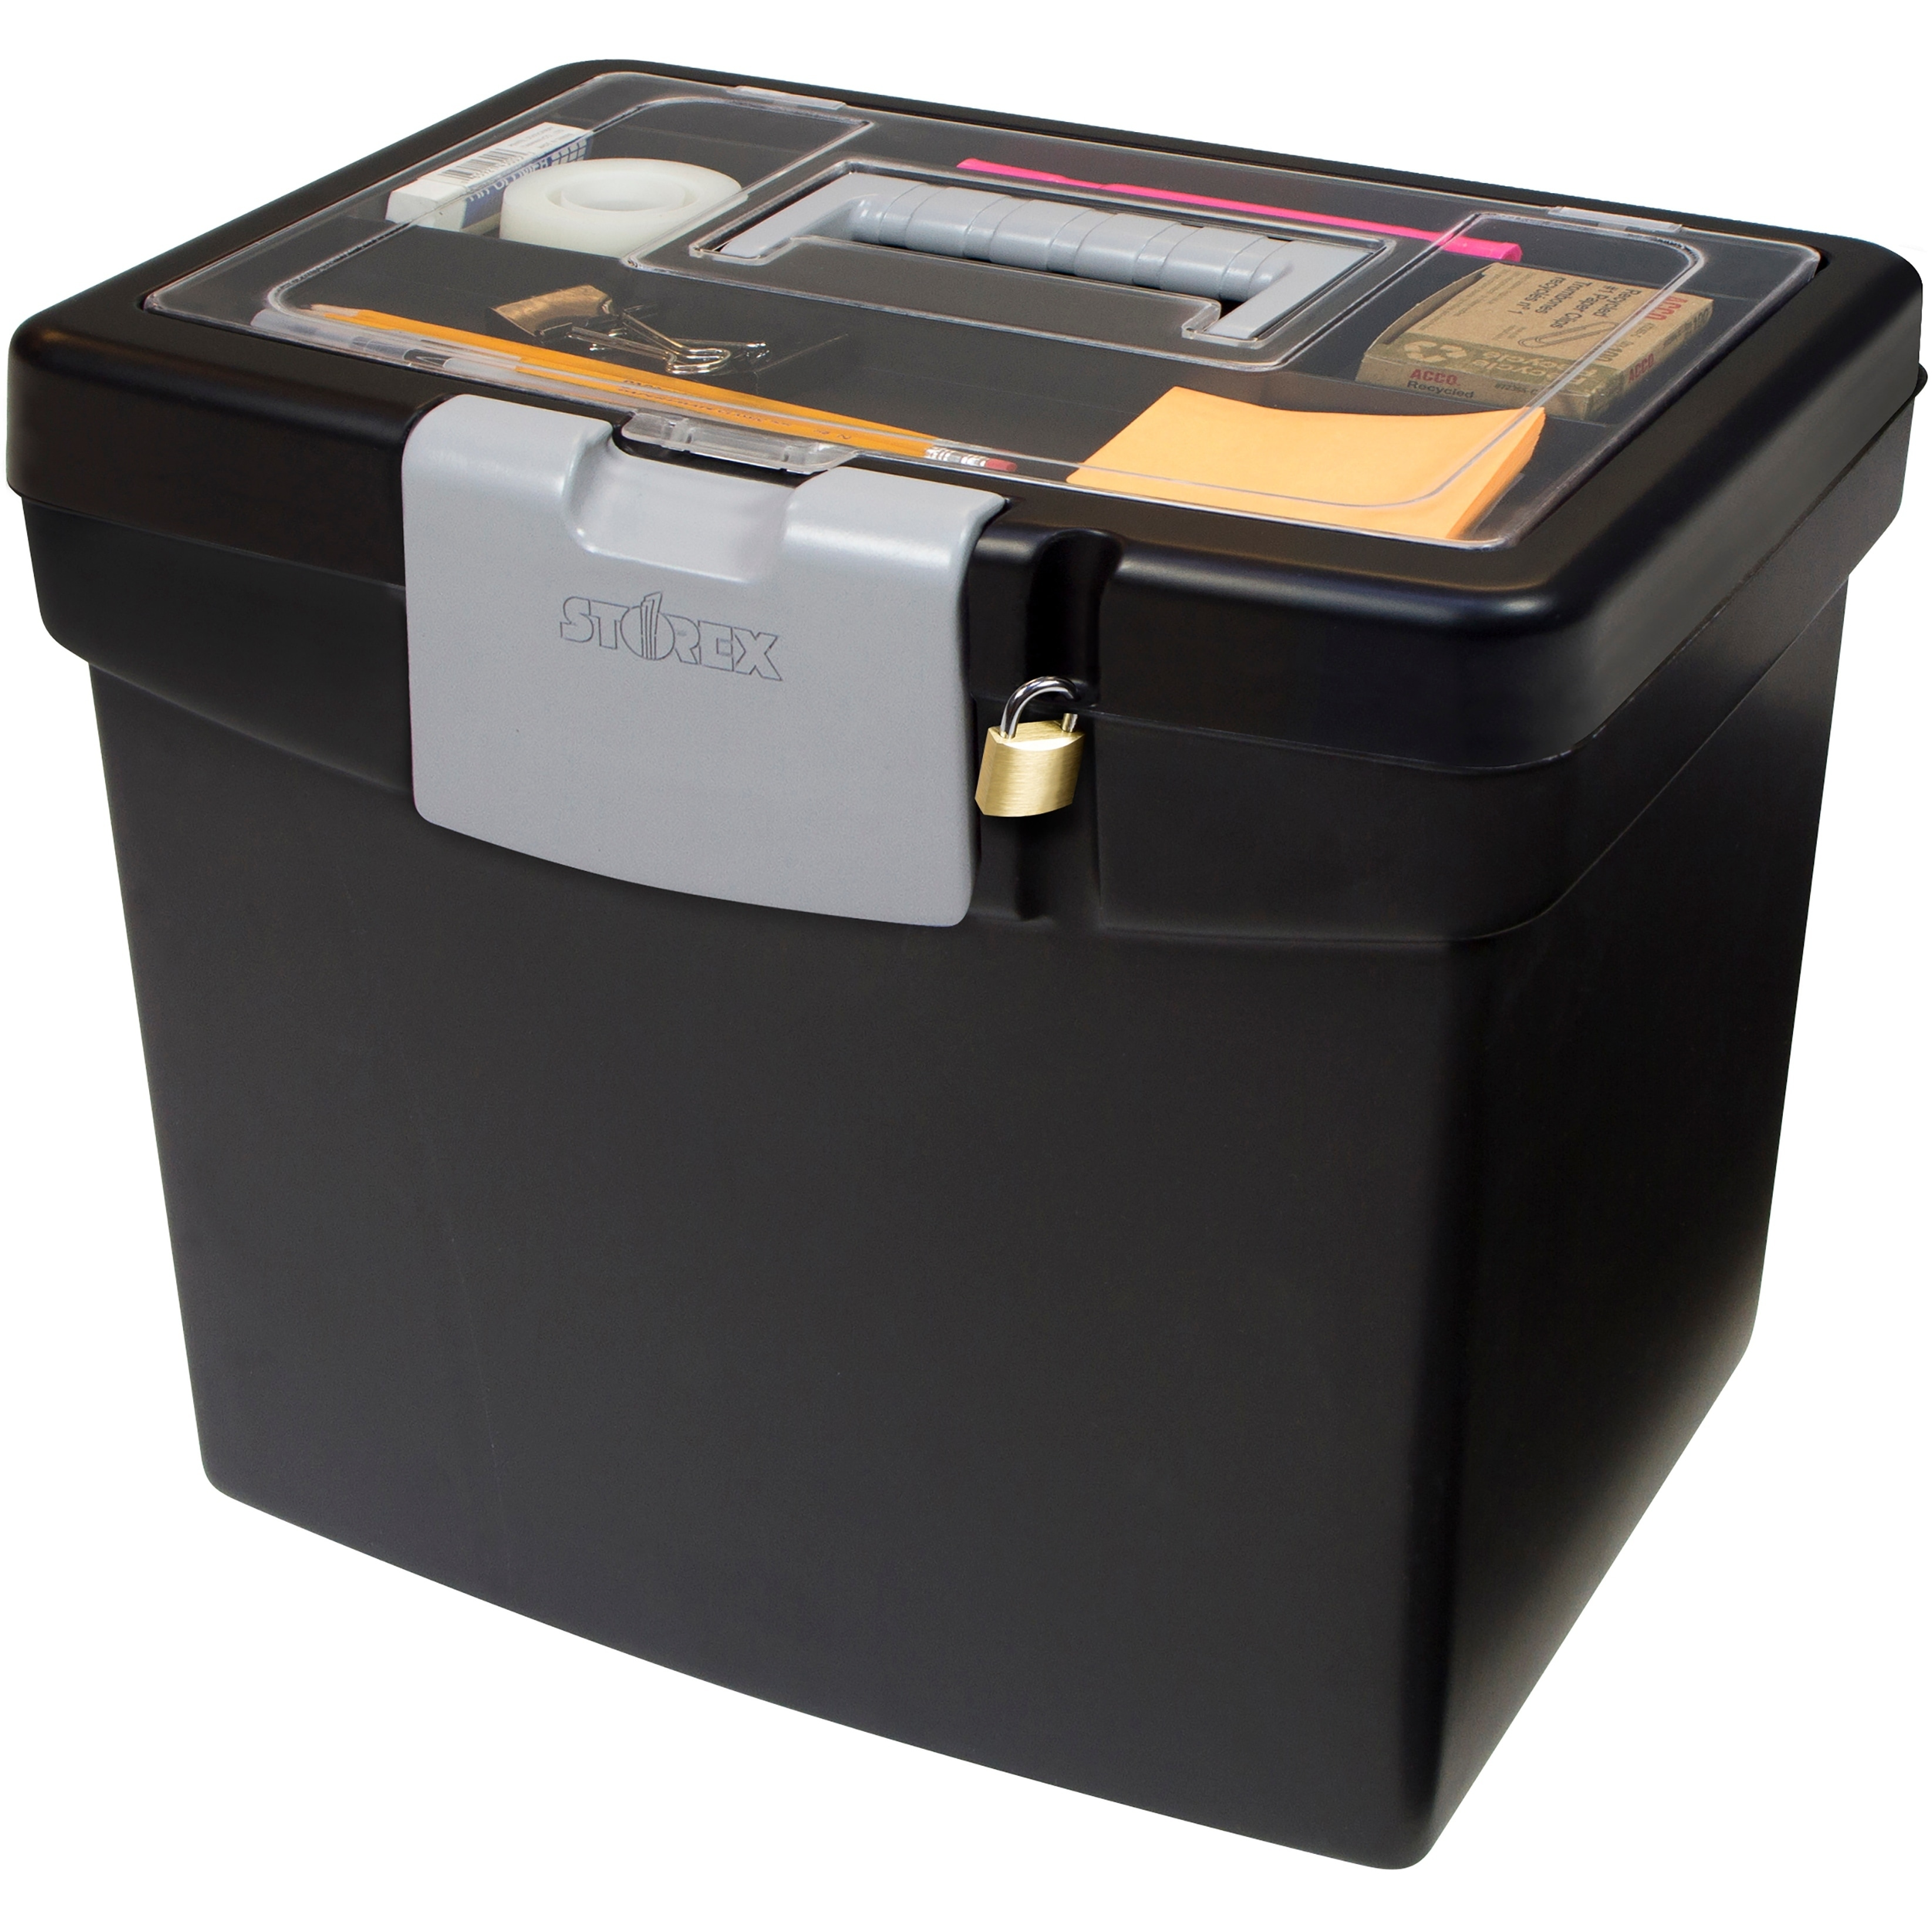 X Portable File Box With Xl Storage Lid Black Color Free Shipping On Orders Over 45 16977879